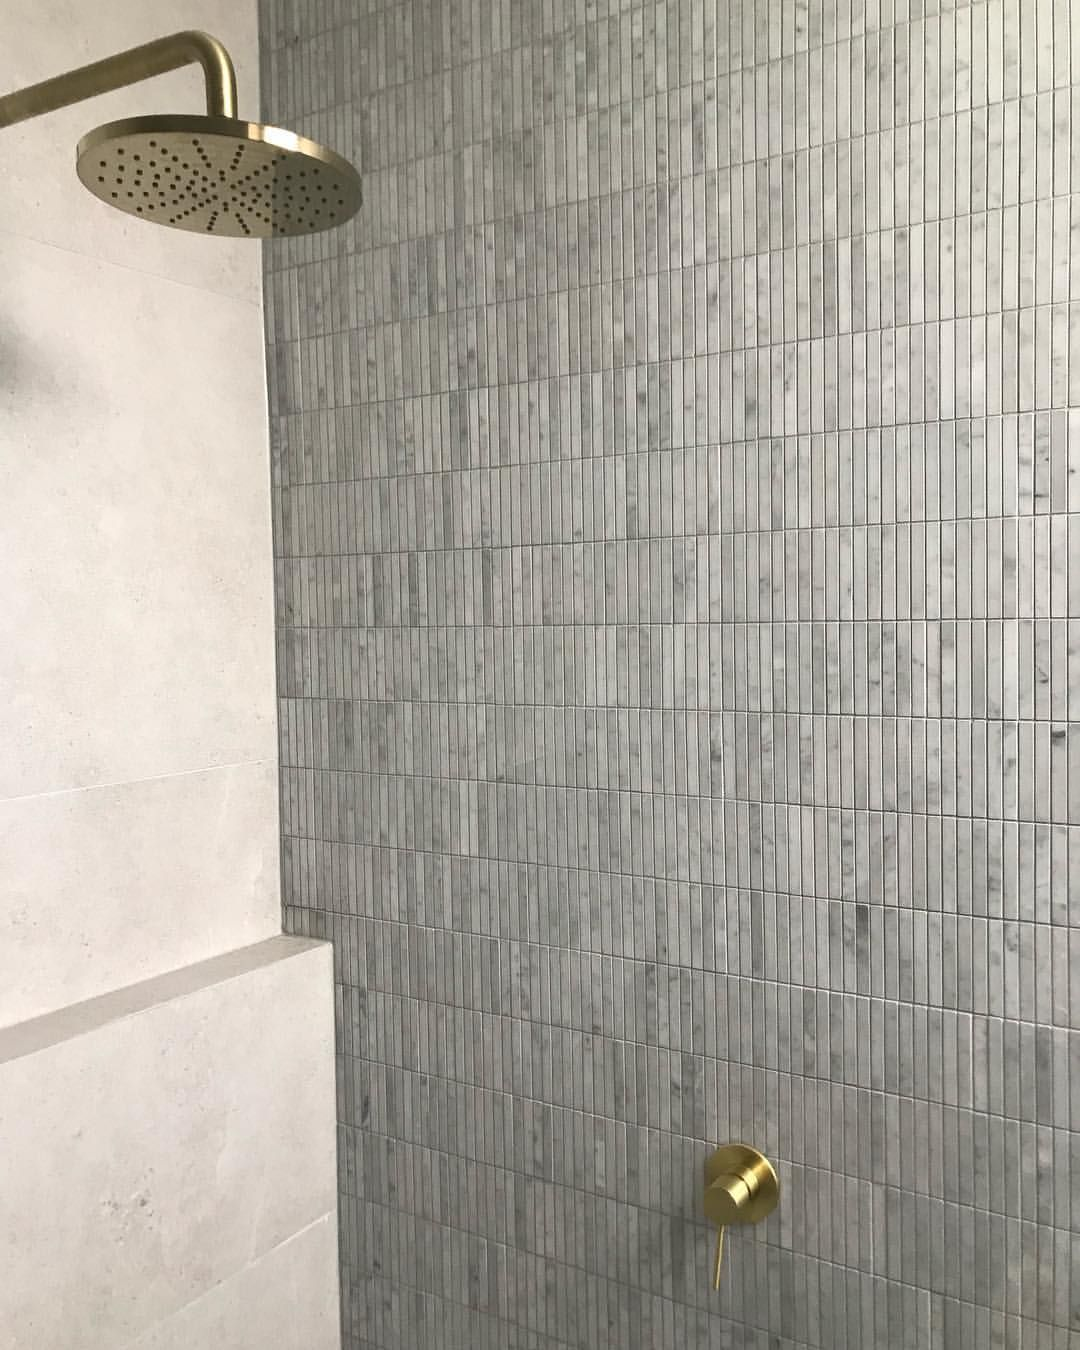 Our La Aggregate Porcelain Floors And Walls Paired With A Feature Wall Of Our Carrara Fingers Stunning Spaces By Th Porcelain Flooring Feature Wall Carrara